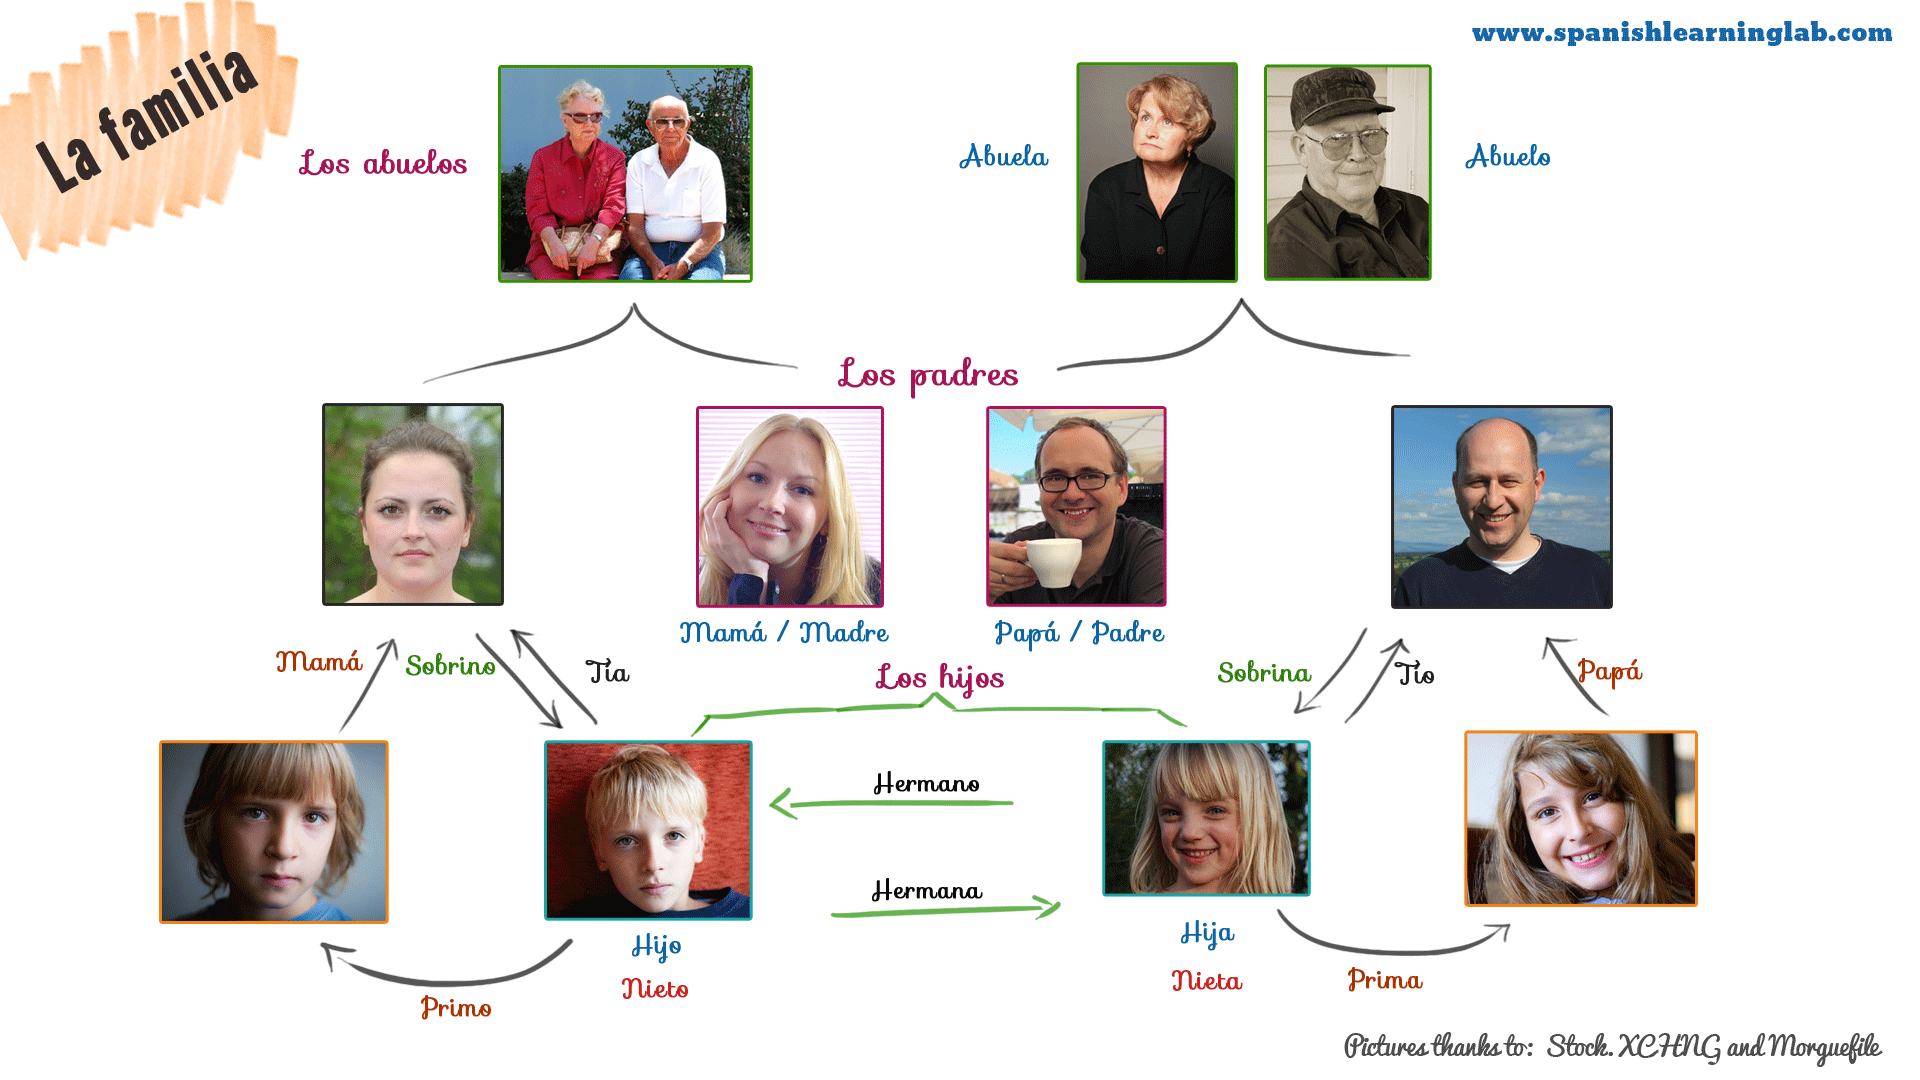 A Simple Family Tree In Spanish For Some Common